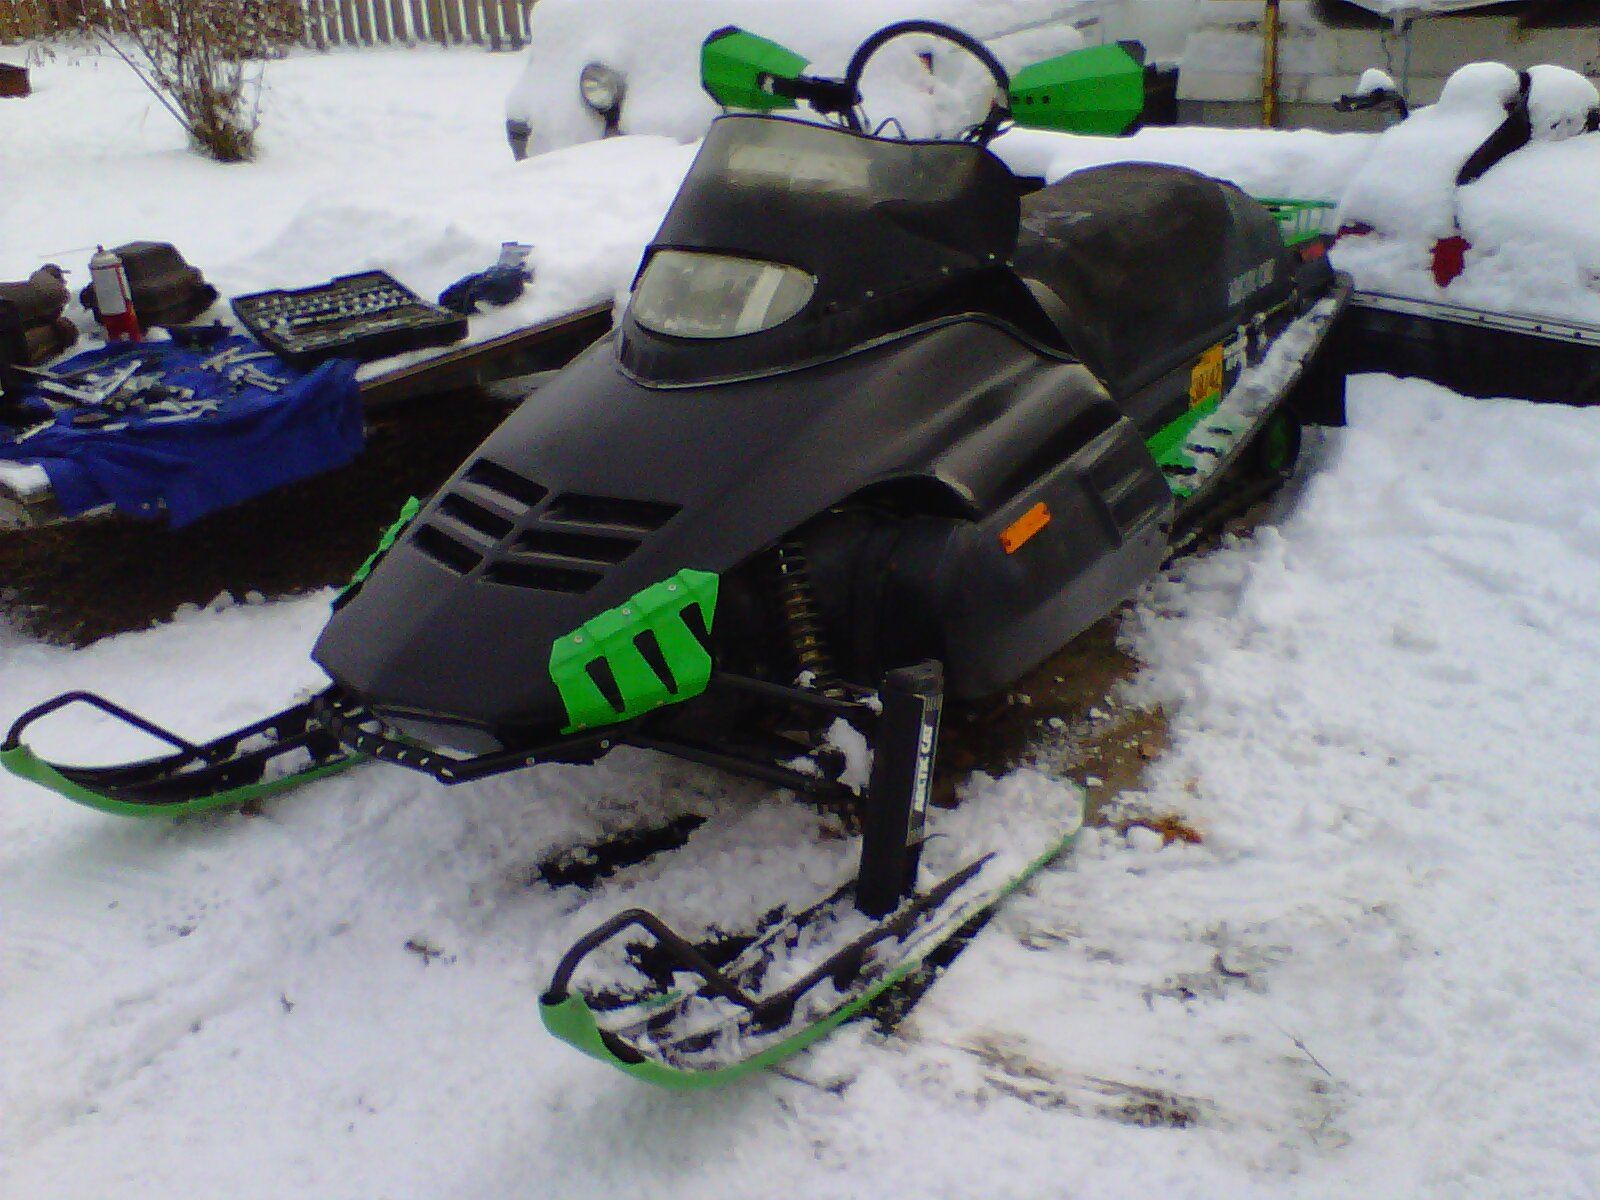 Arctic Cat Snowmobile Wiring Diagram Cougar 440 1994 Light Switch 2001 Engine For 800 Twin Needed Arcticchat 222162d1359797311 Got Any Pics Your Ext Sled Repairs 022 309869 3html